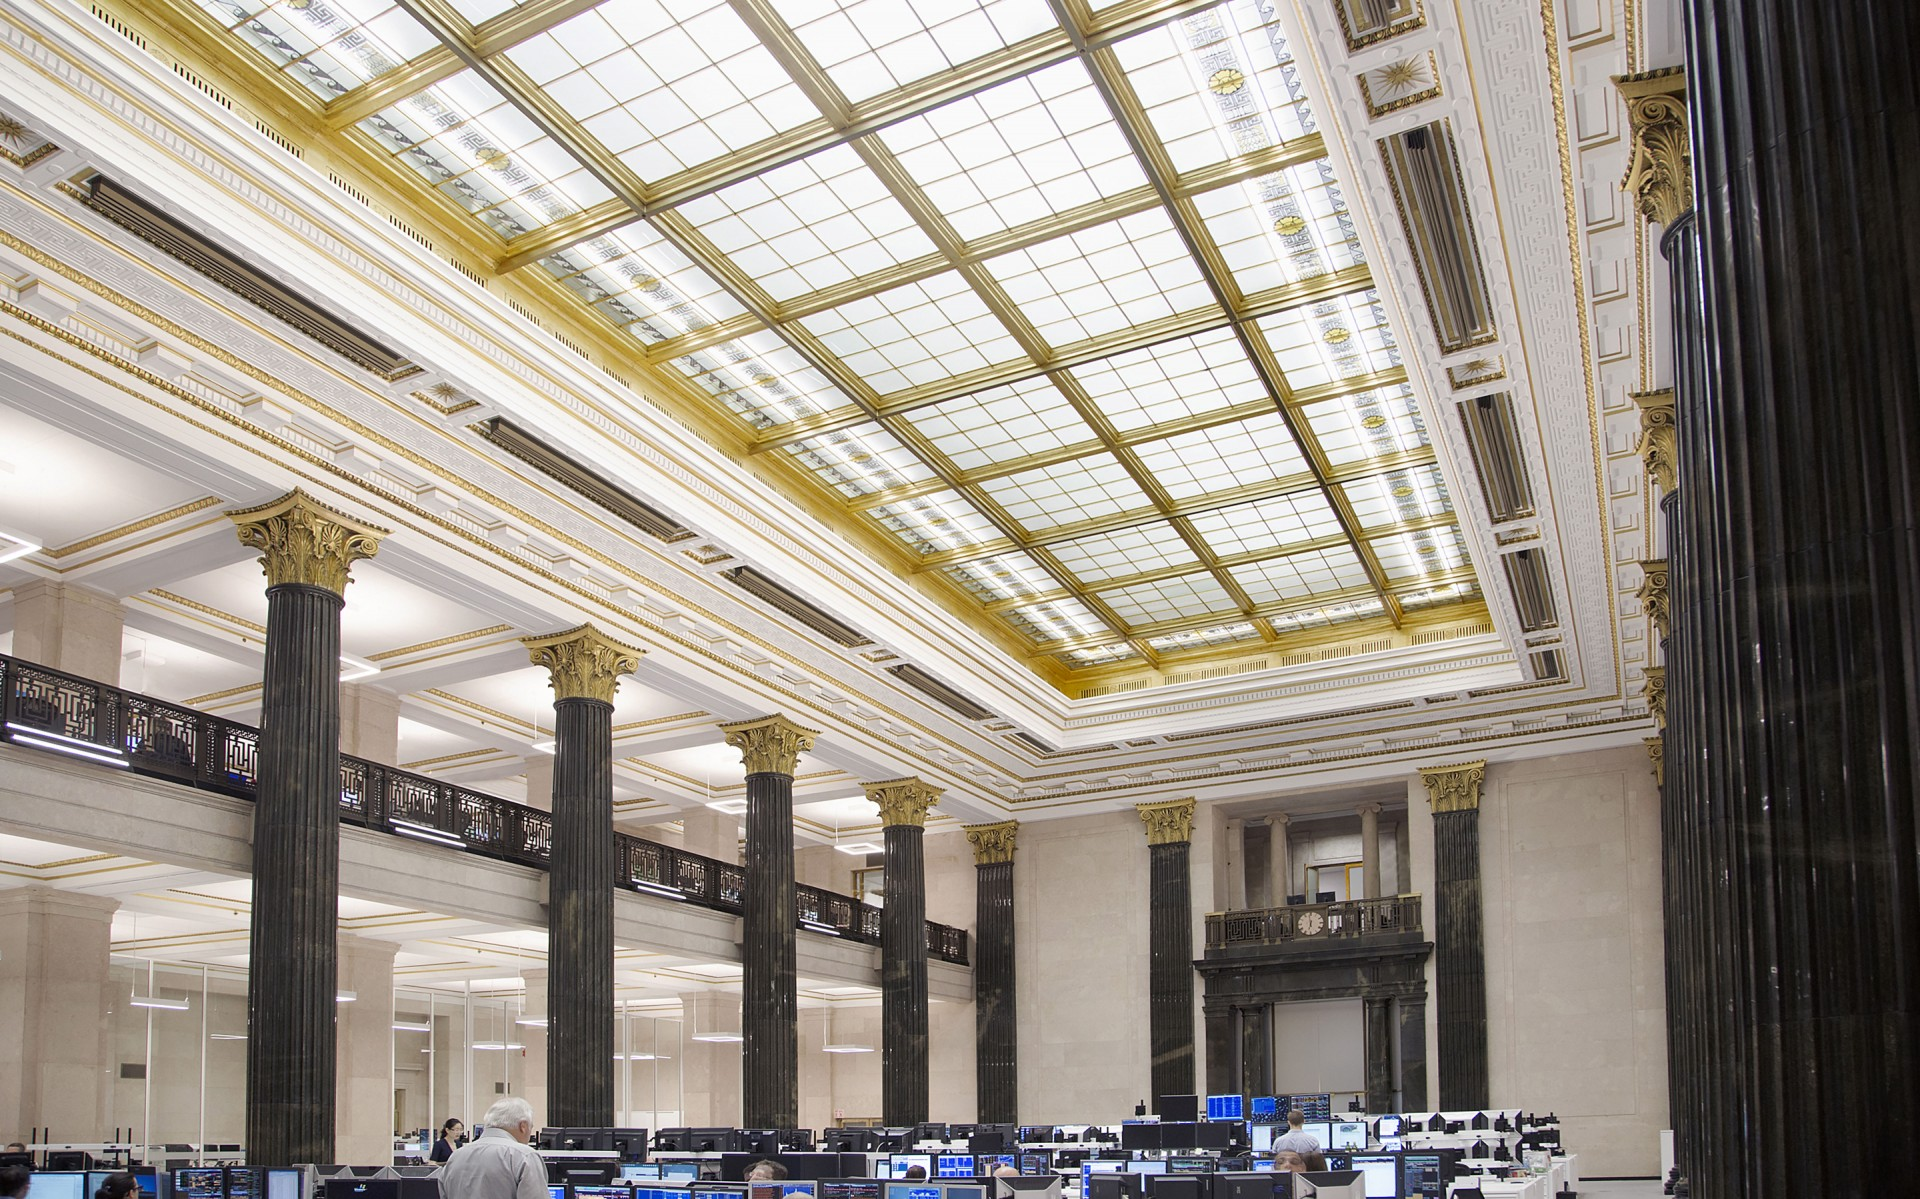 Lumenline luminaires, hidden in the glass around the artificial skylight, light the ceiling and provided general lighting for the entire hall.  – Sébastien Racicot